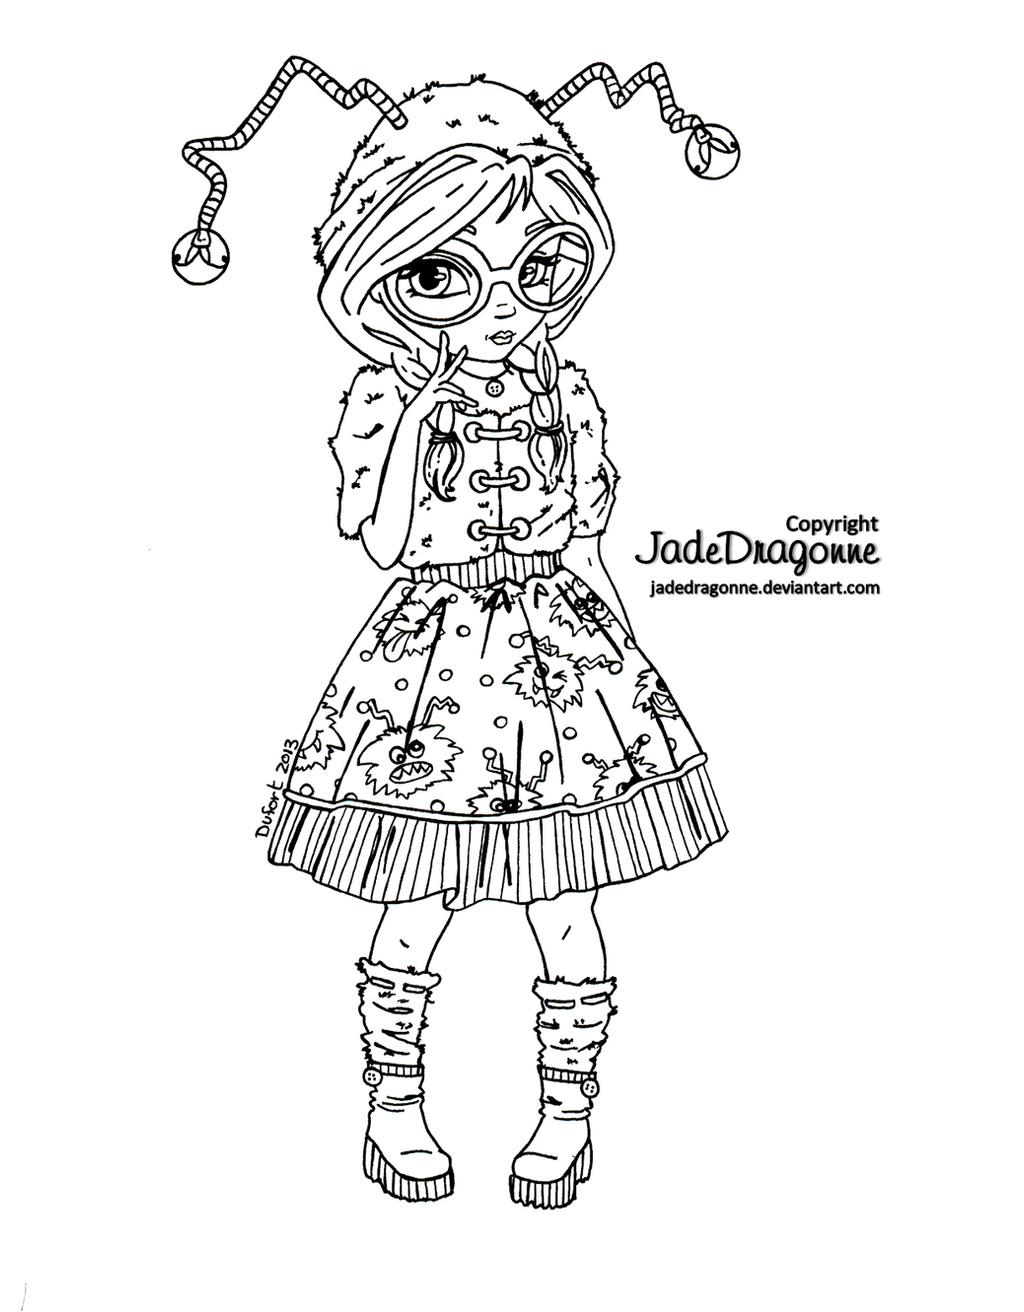 jadedragonne deviantart coloring pages - photo#19